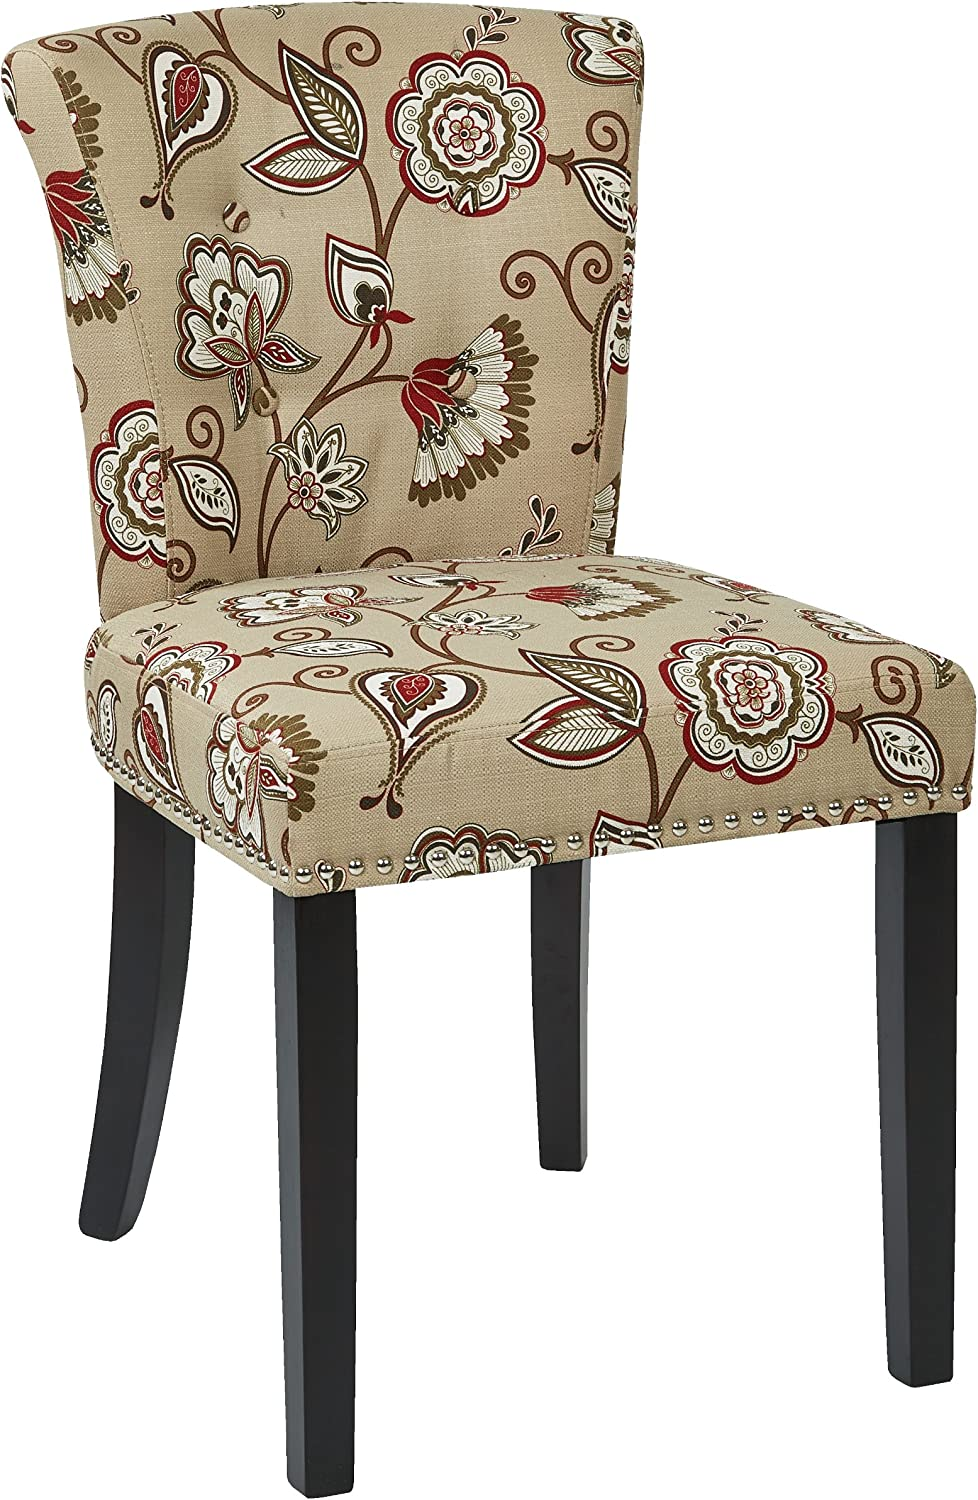 Avenue Six KND-A17 Kendal Tufted and Inner Spring Chair with Nailhead Detail and Solid Wood Legs, Avignon Bisque Fabric